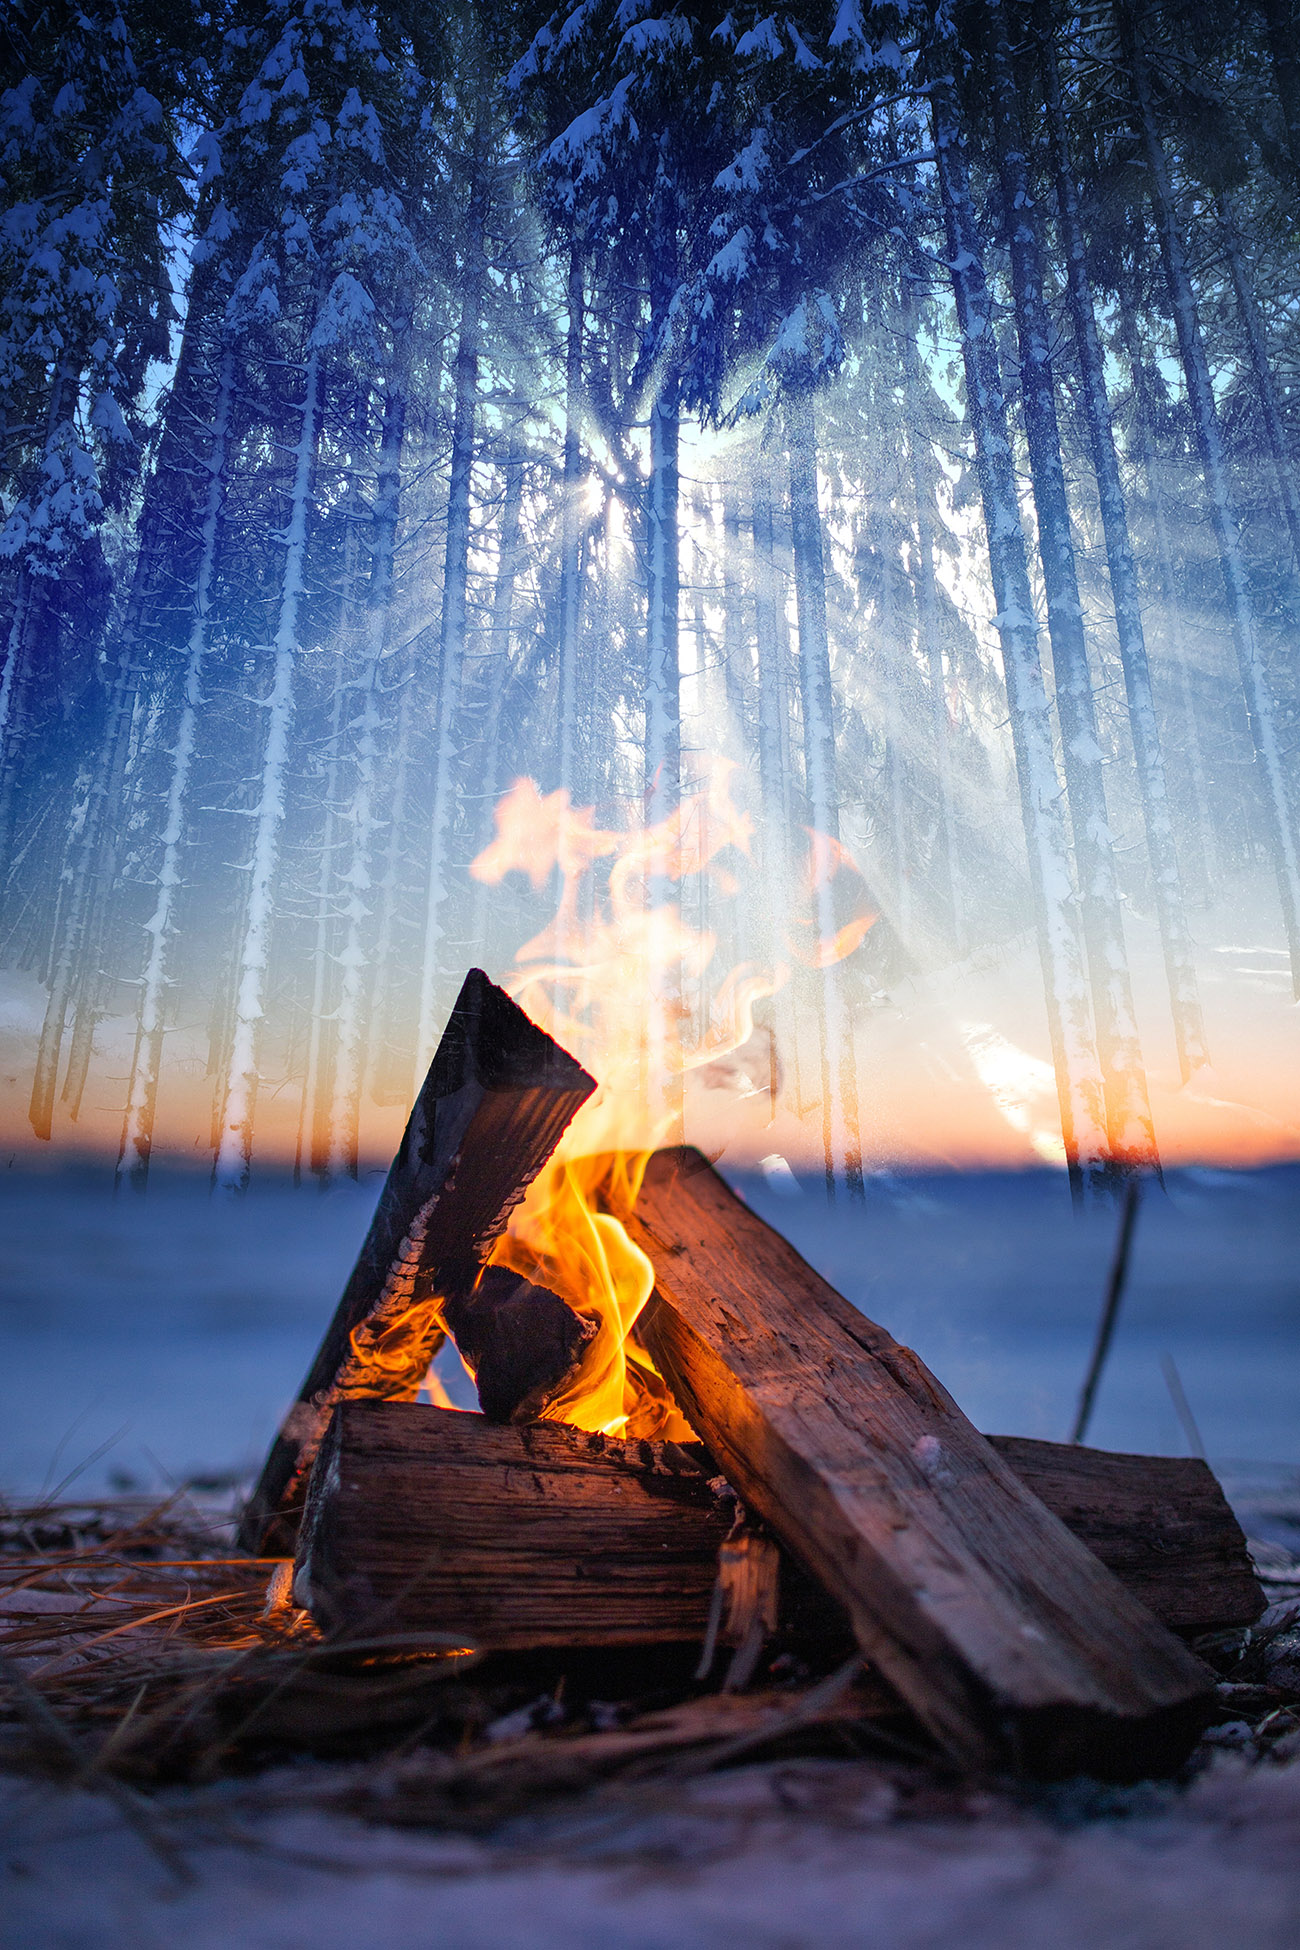 Wintery Wood Fire 01 - Stock Photography